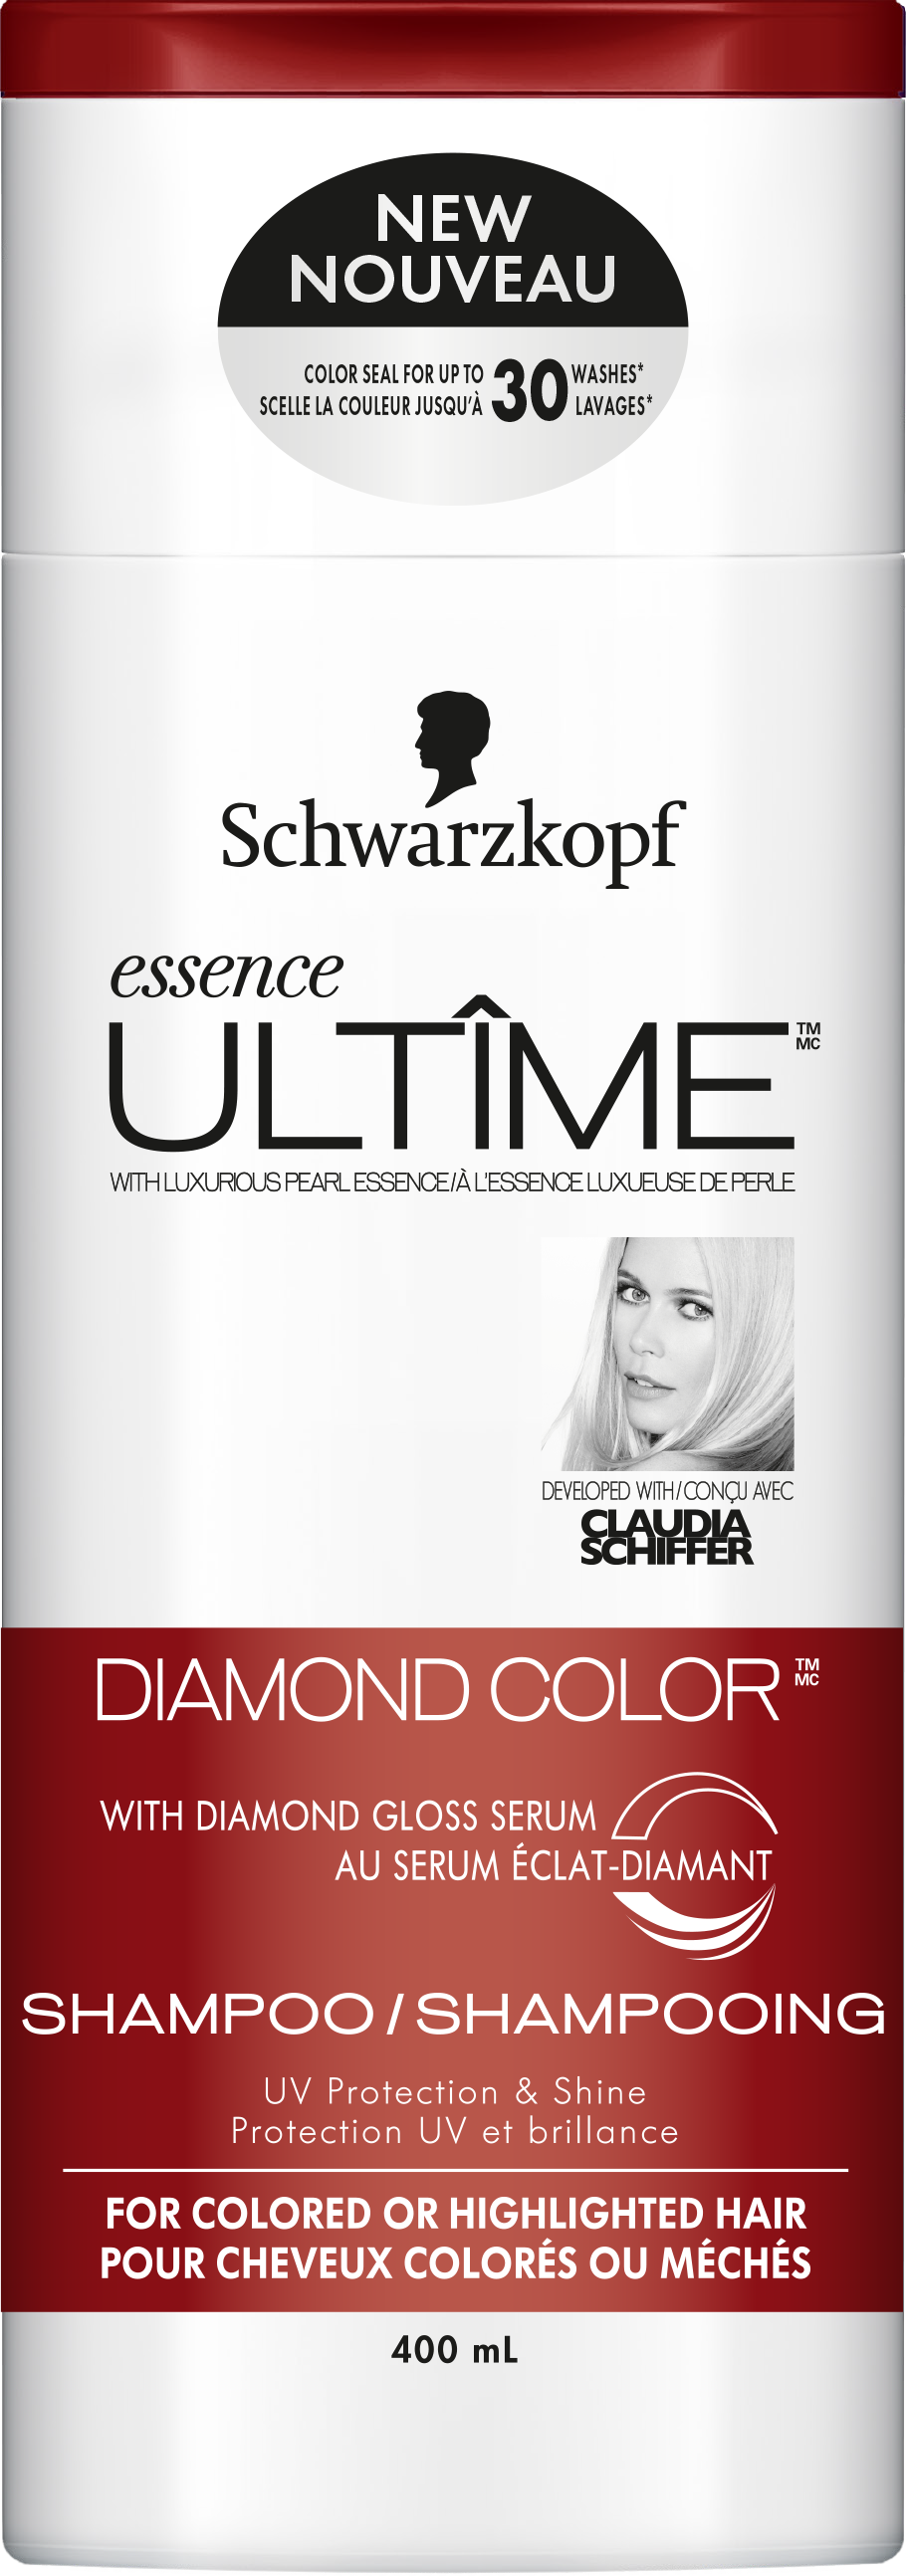 Schwarzkopf Essence ULTIME Diamond Colour Shampoo